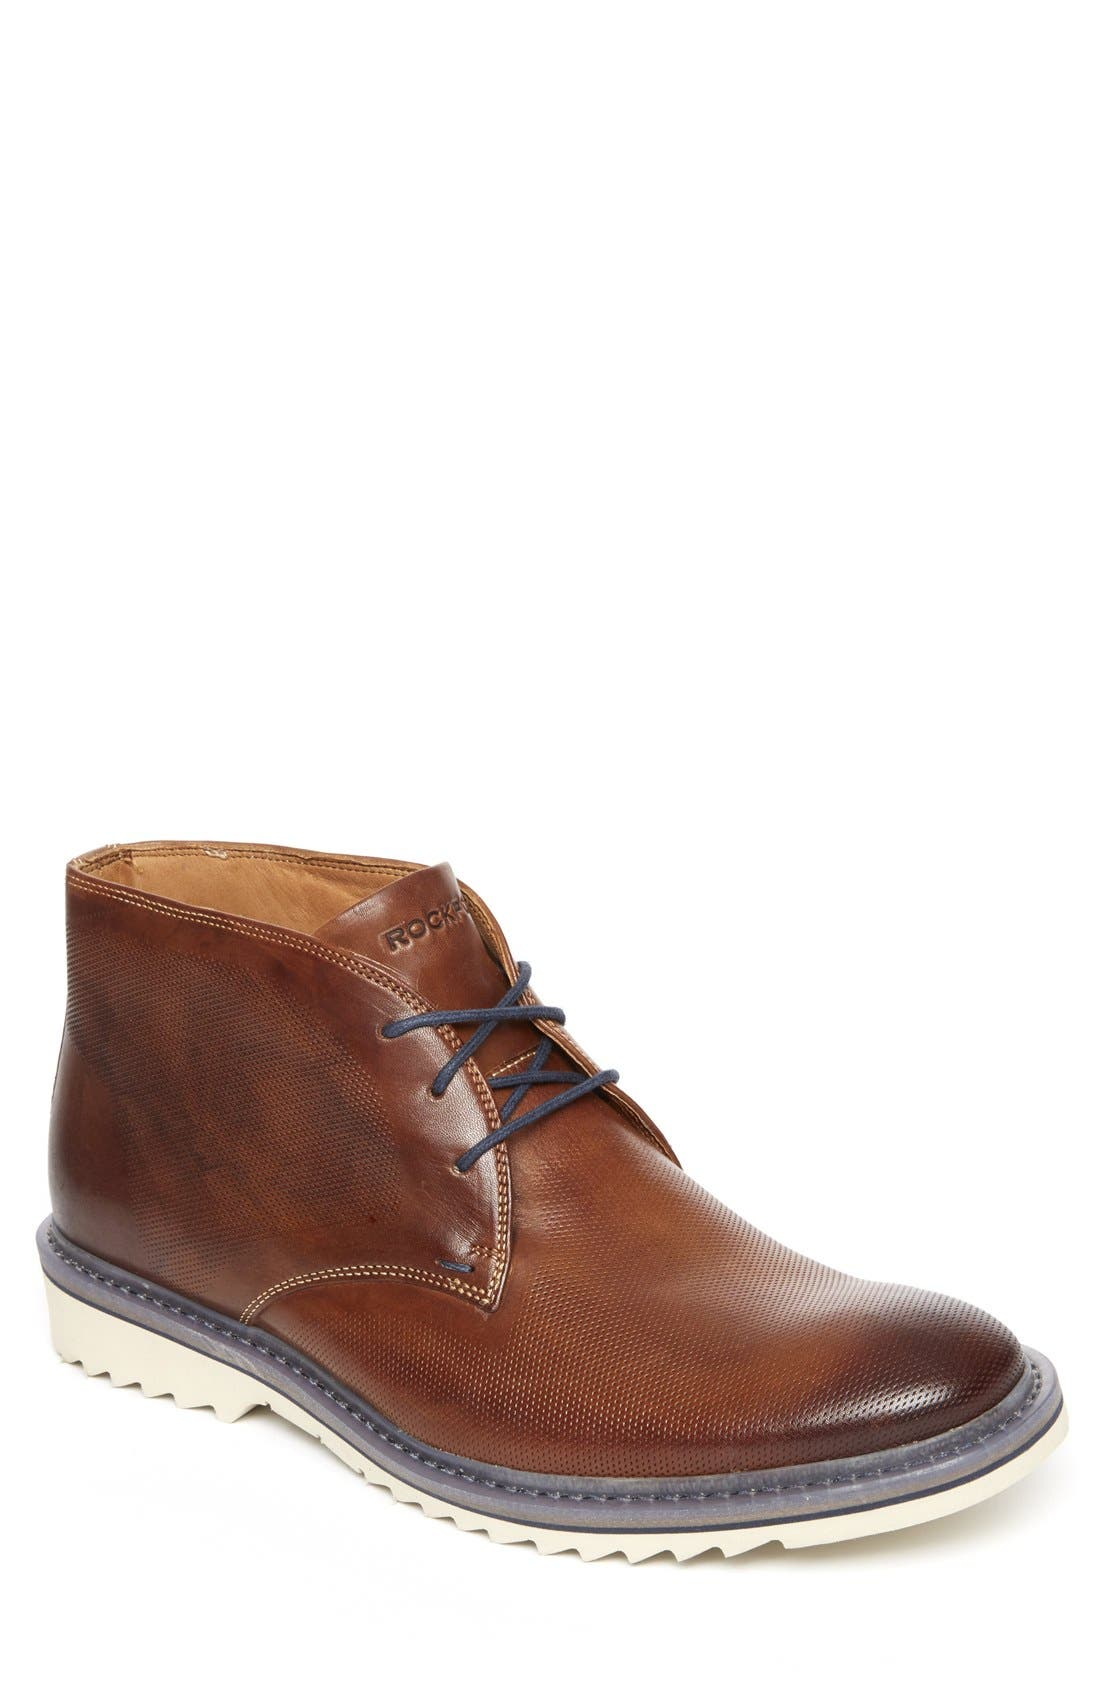 Jaxson Chukka Boot,                             Main thumbnail 1, color,                             200